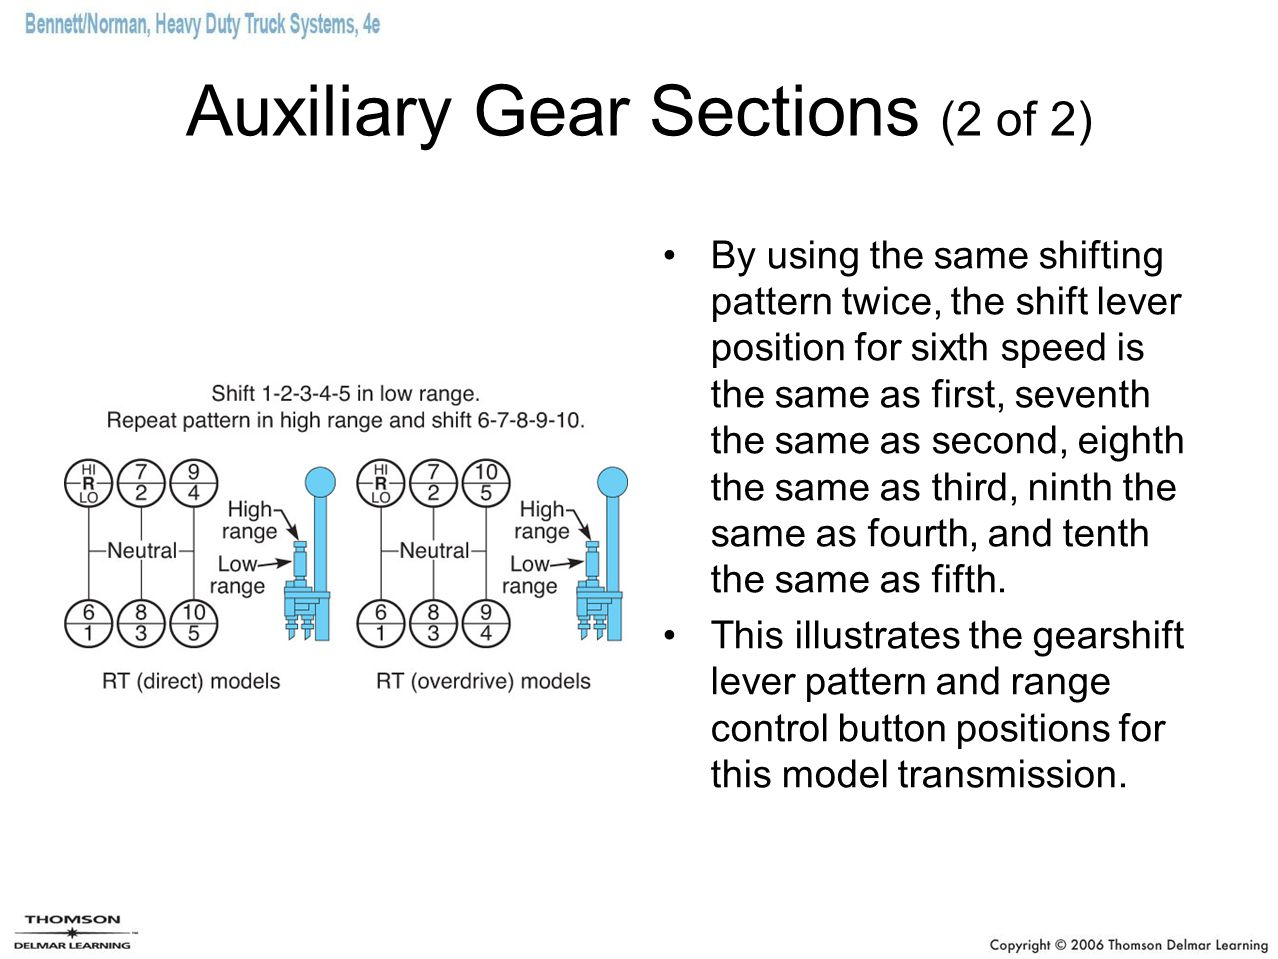 Auxiliary Gear Sections (2 of 2)